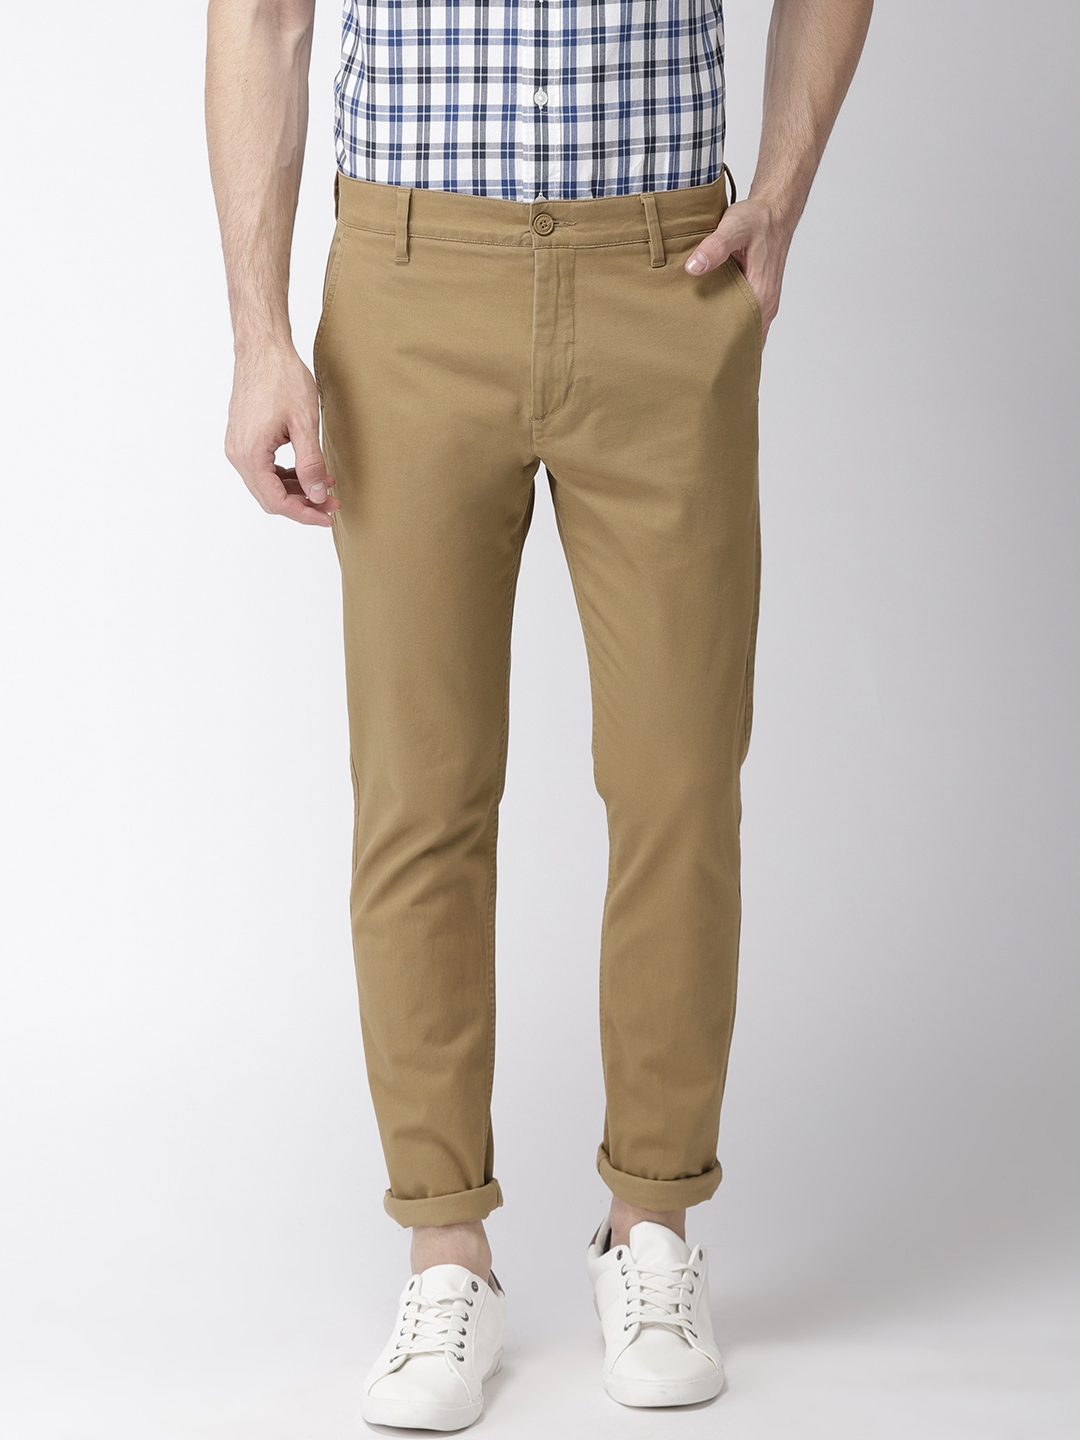 1cc2038fbe6 Buy Levis Men Khaki Tapered Fit Solid Chinos 512 - Trousers for Men ...